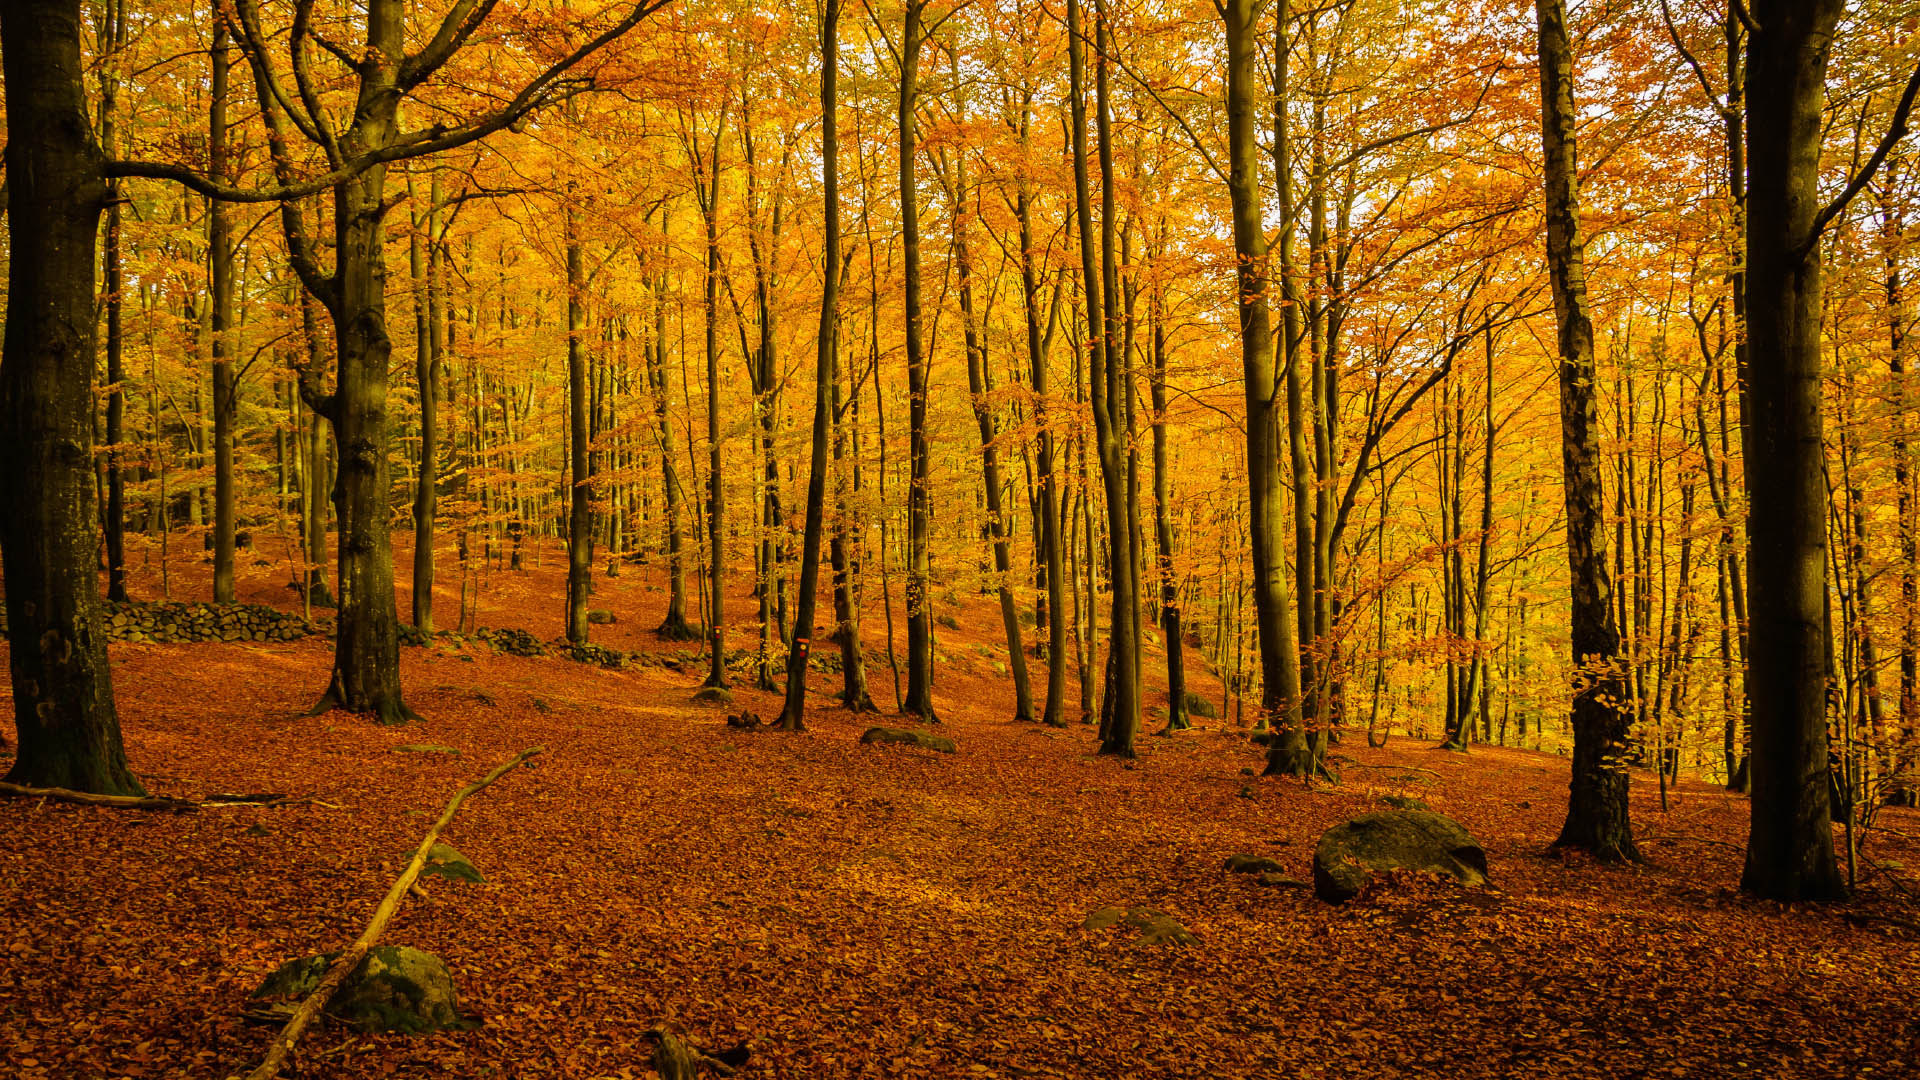 Autumn Forest in Sweden Photography Wallpaper 31